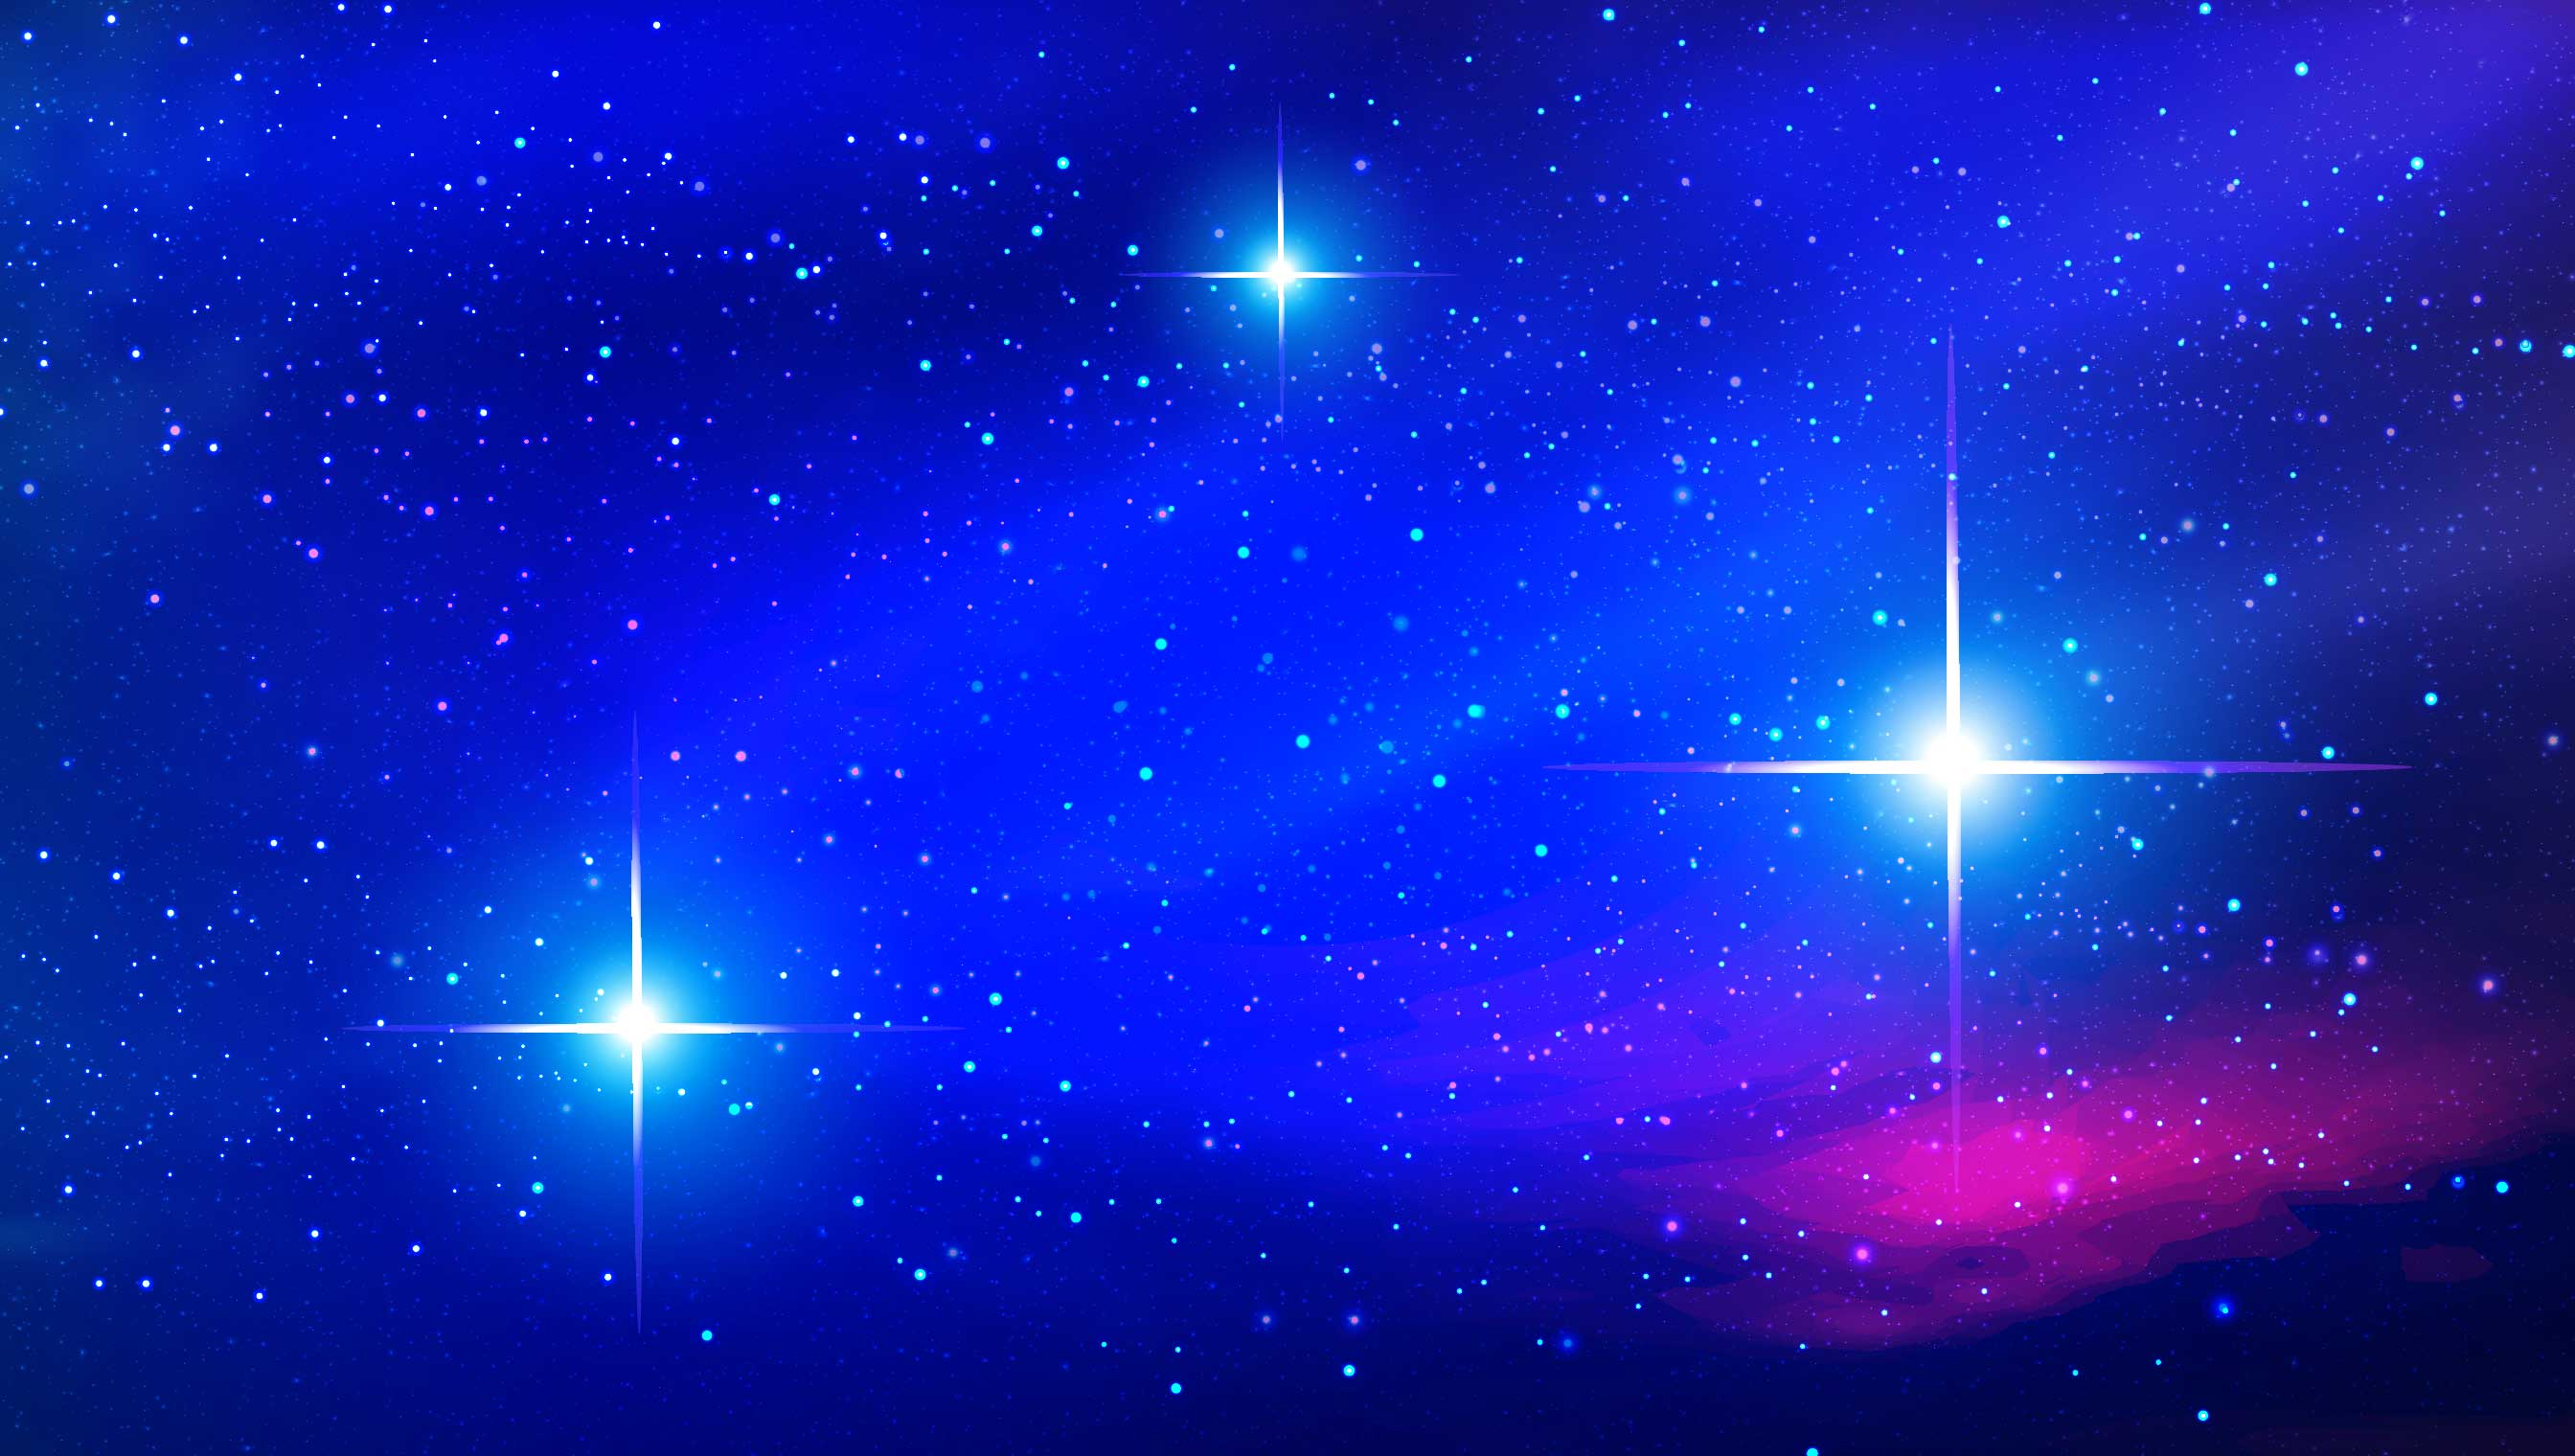 background scene - Space Background 7